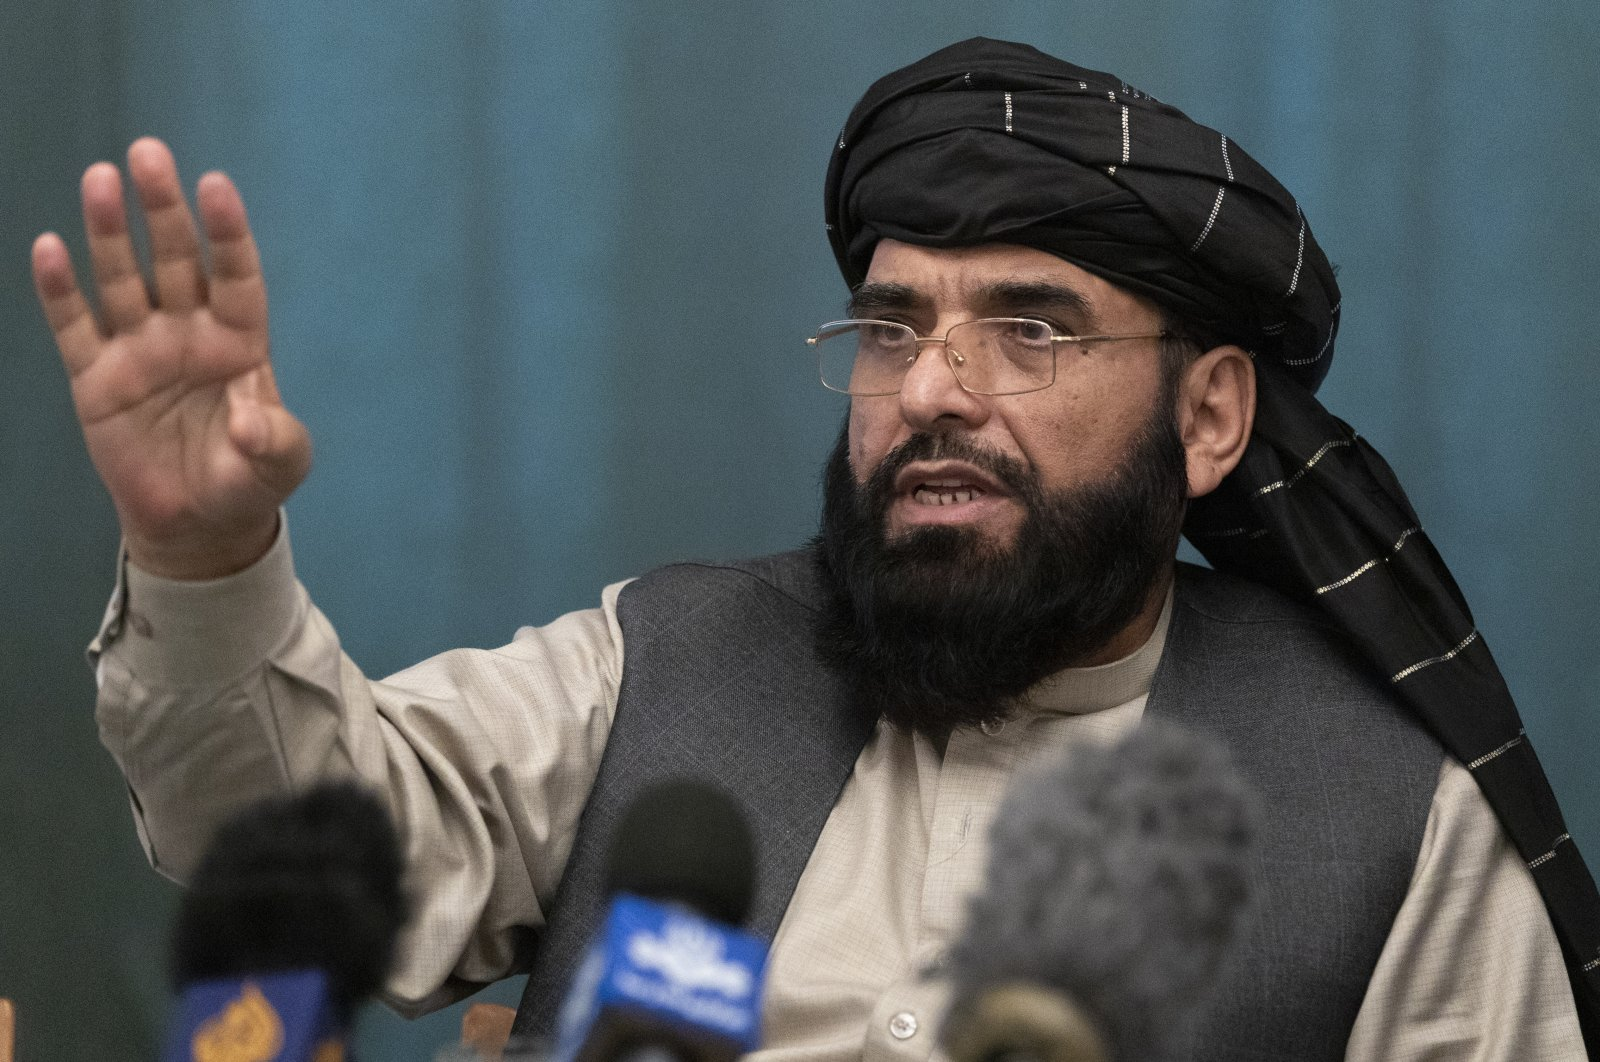 Suhail Shaheen, Afghan Taliban spokesperson and a member of the negotiation team, gestures while speaking during a joint news conference in Moscow, Russia, March 19, 2021 (AP File Photo)